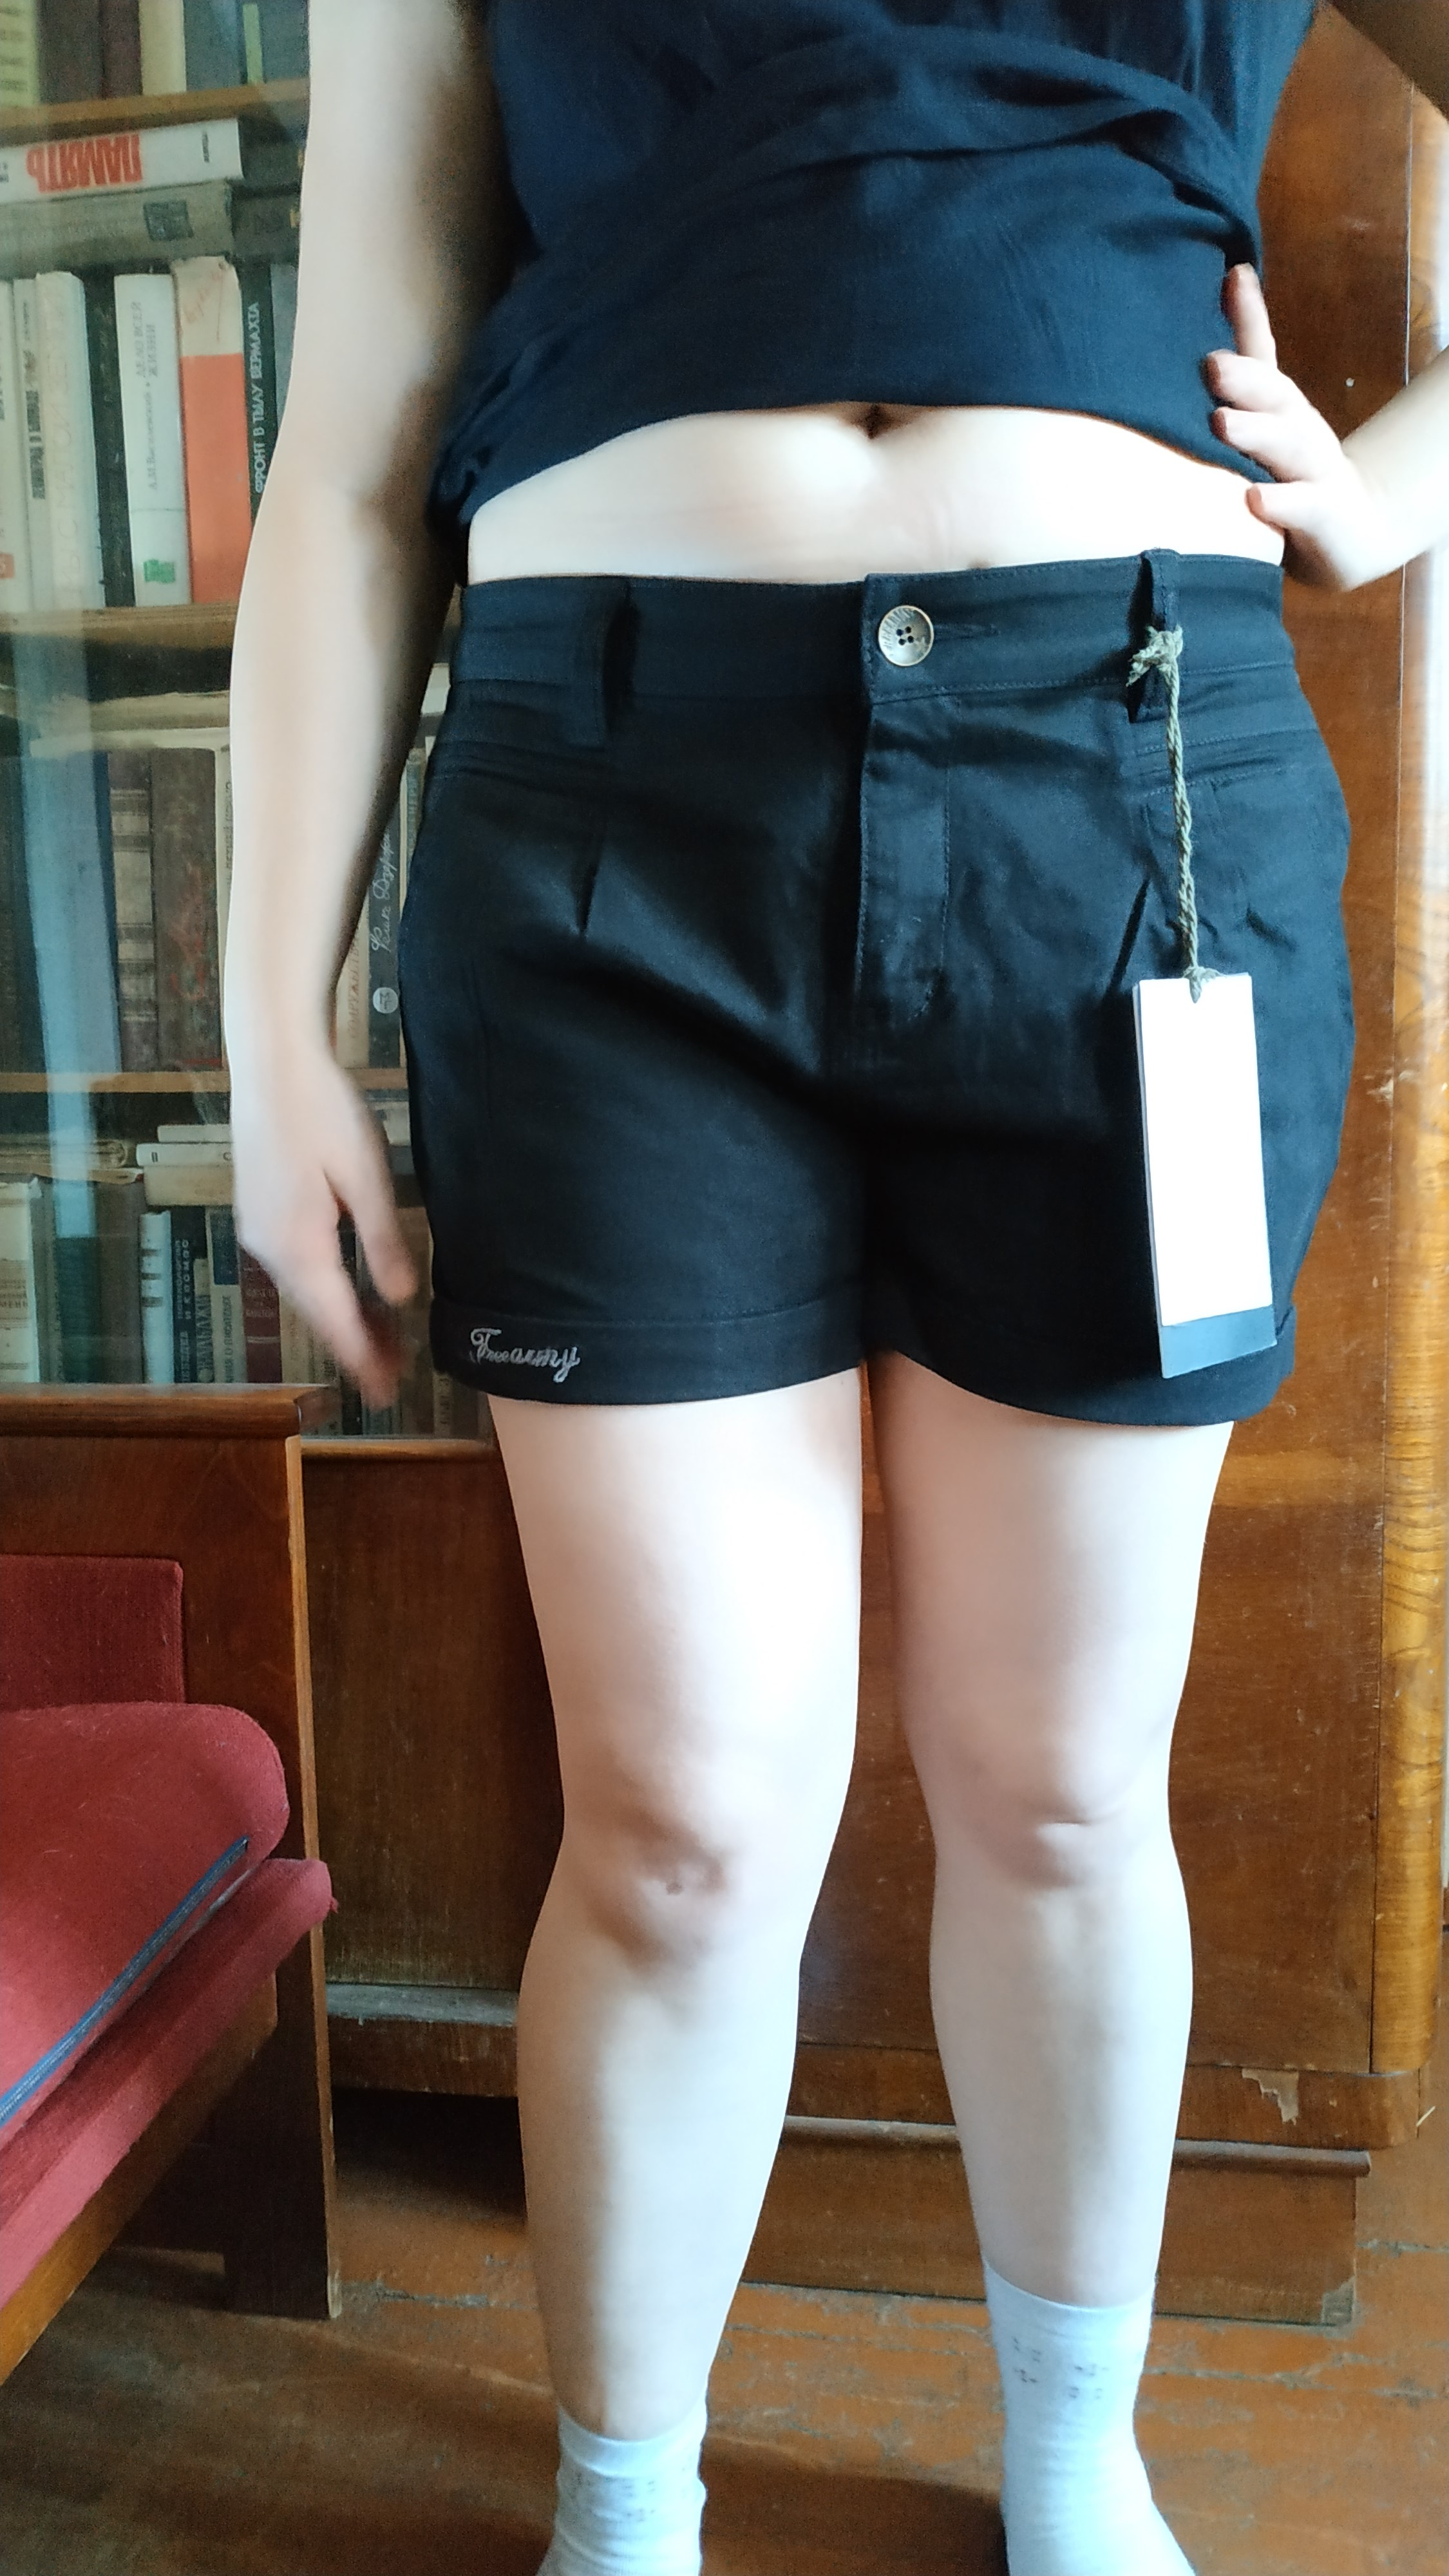 Embroidery Shorts Women Summer Fashion Casual Cotton Shorts 4 Solid Colors Short Pants Brand Clothing Sexy Hot Woman Shorts